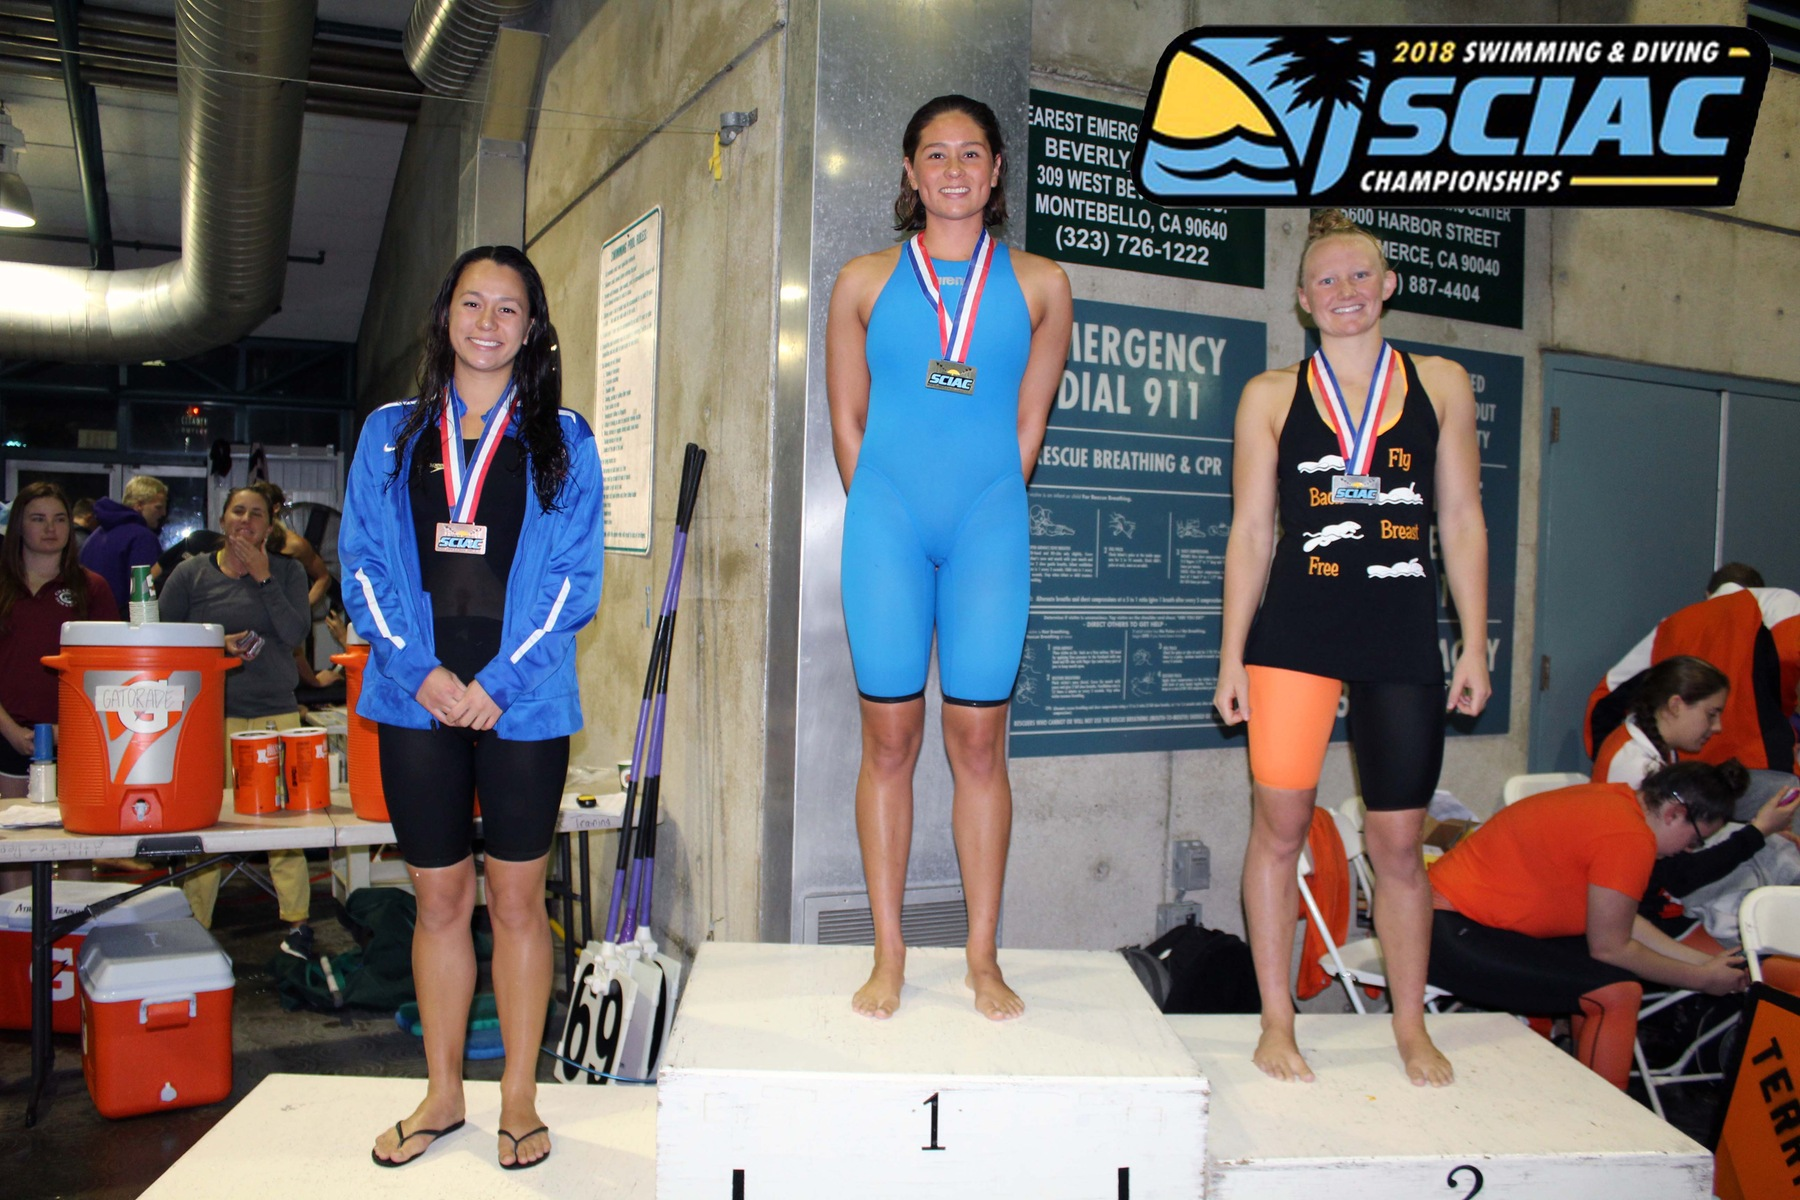 Ramirez Wins 200-Yard Free, Sets SCIAC Record